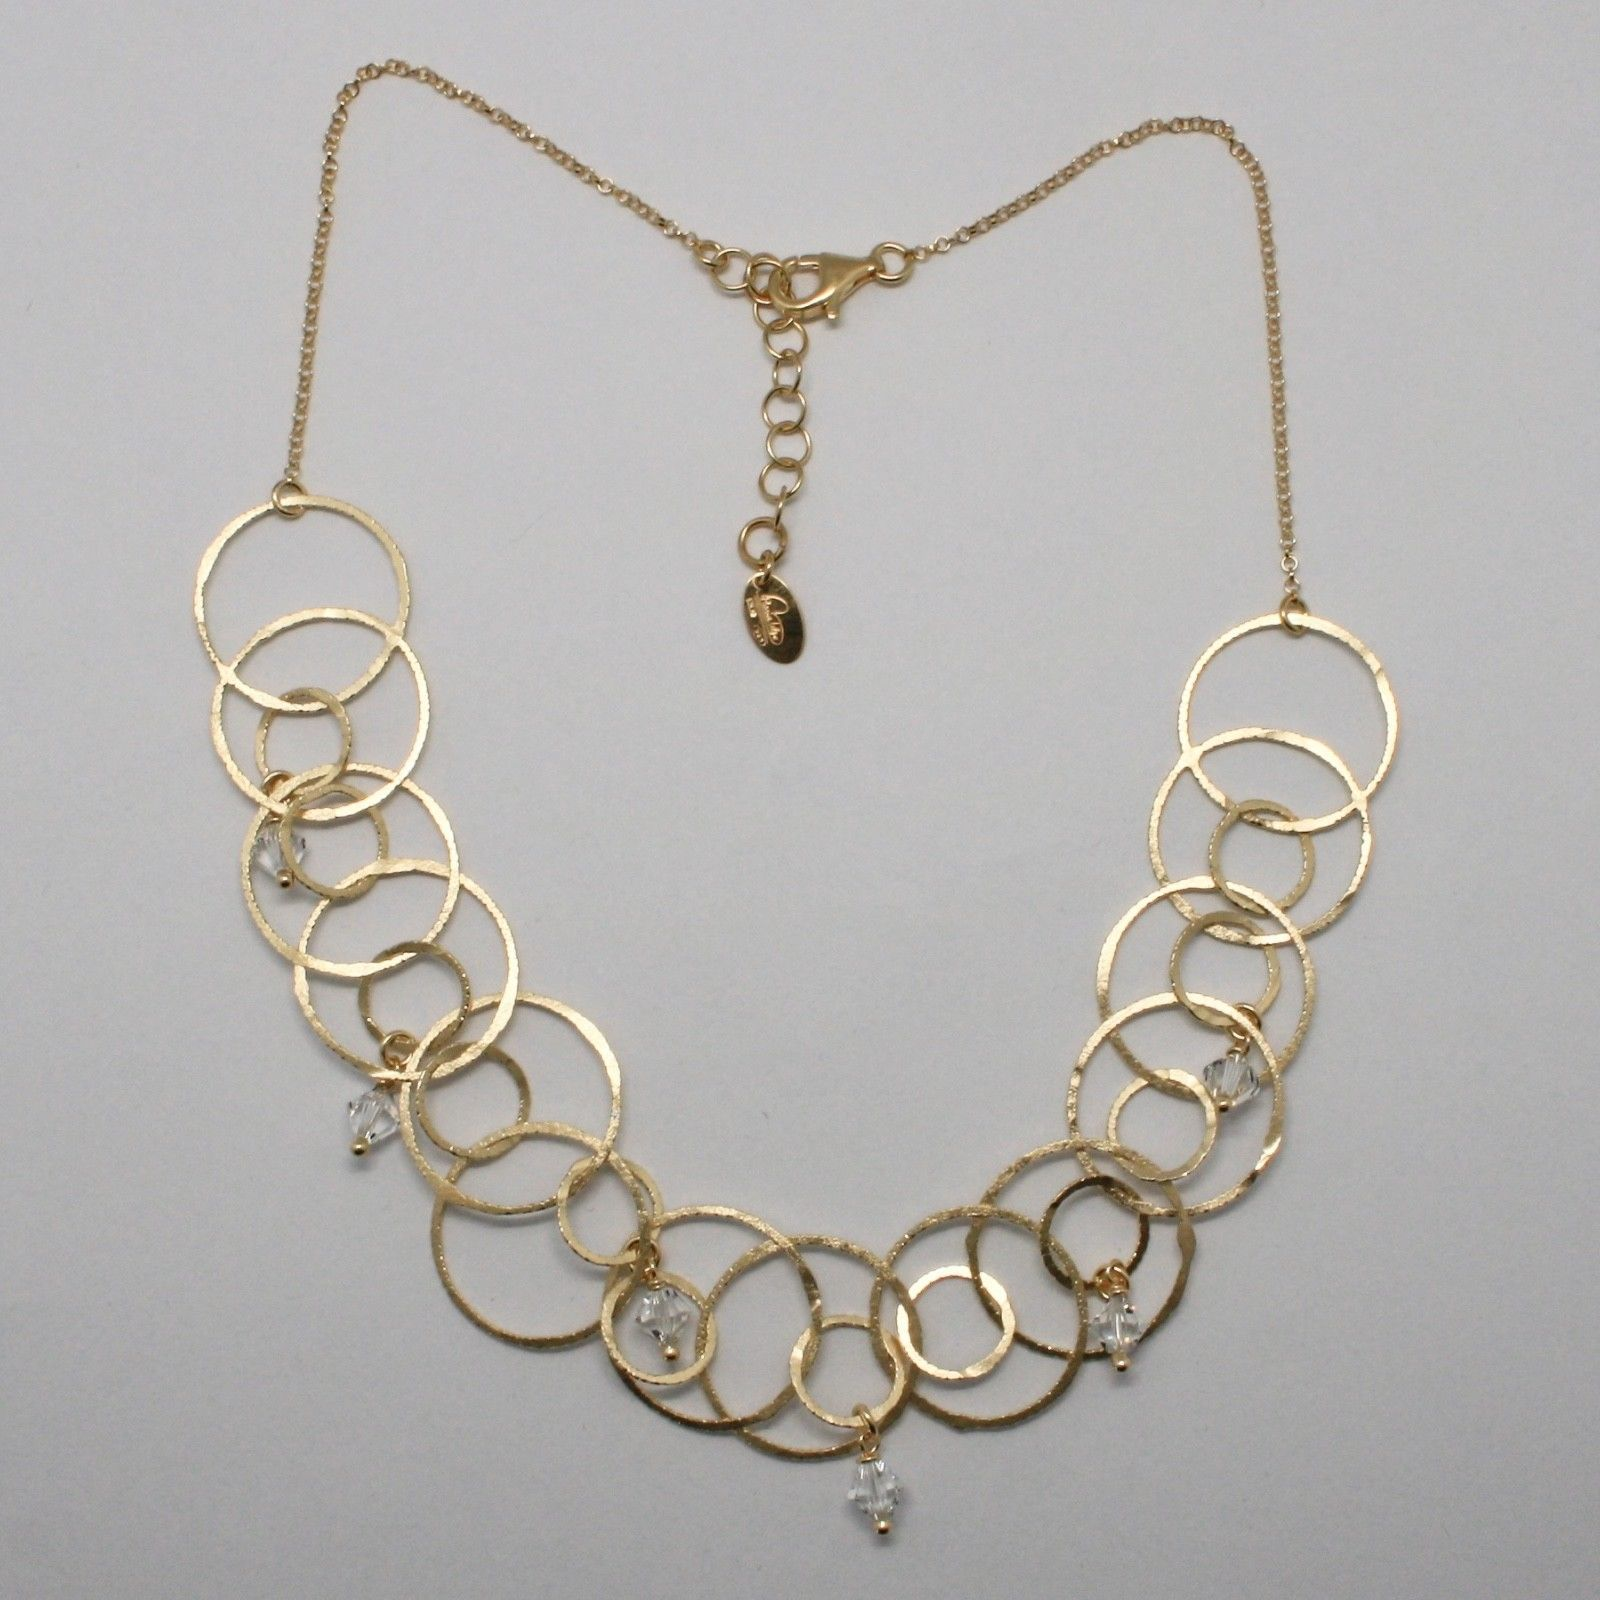 CHOKER NECKLACE 925 SILVER LAMINA GOLD CIRCLES BY MARY JANE IELPO MADE IN ITALY